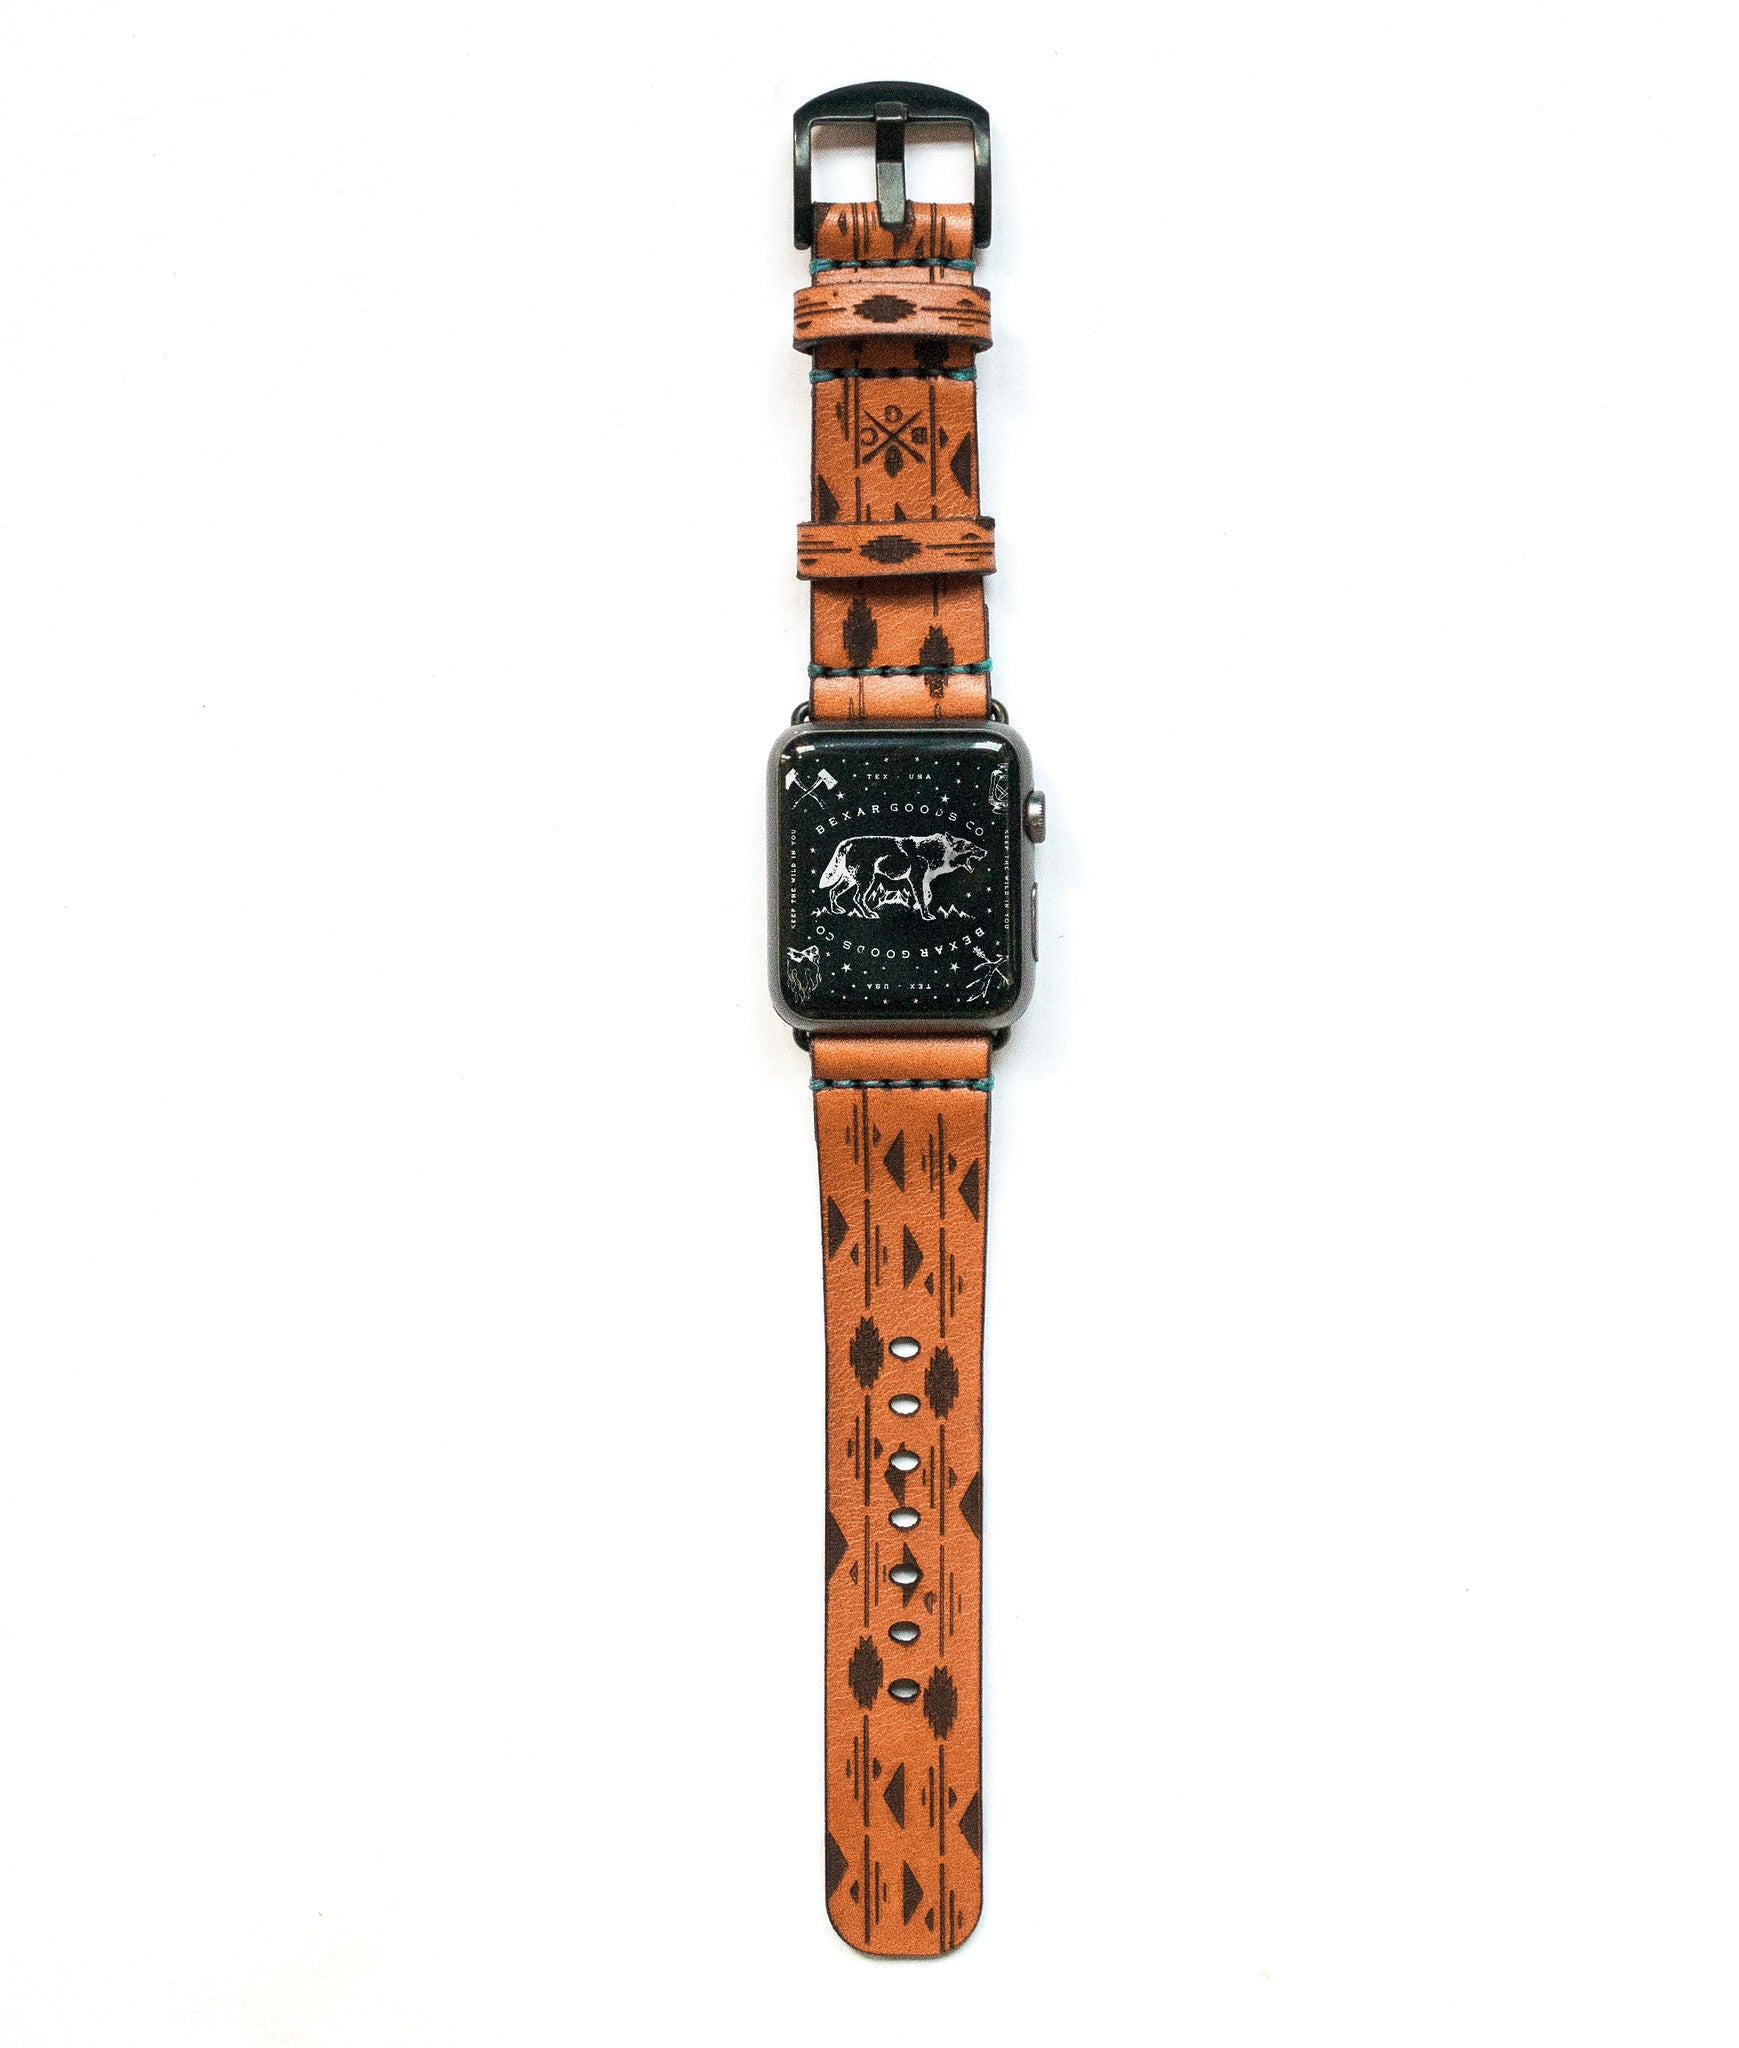 Apple Watch Strap Bexar Goods Bexar Goods Co